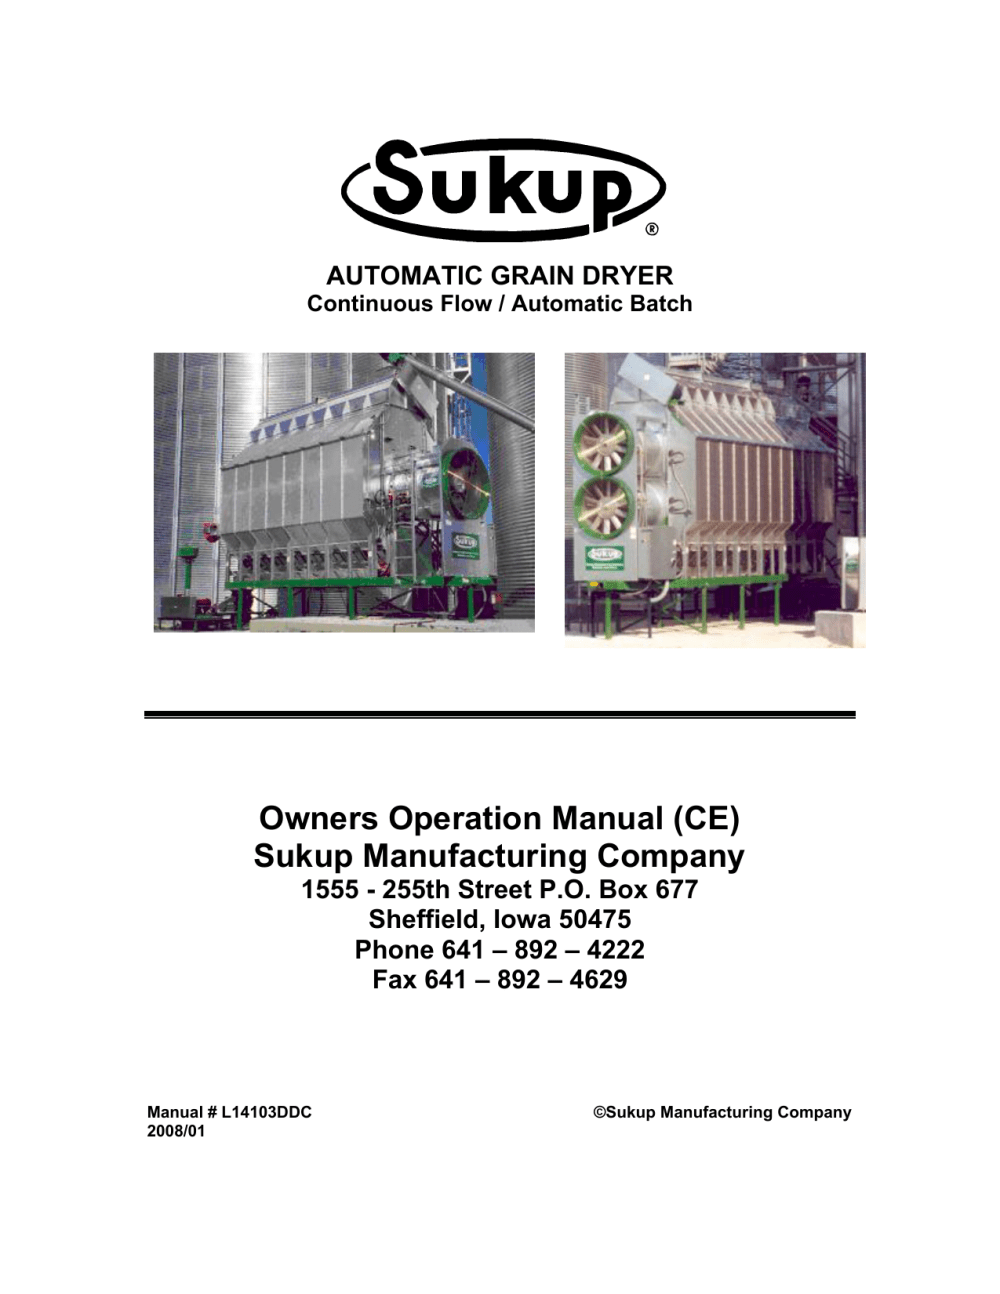 medium resolution of owners operation manual ce sukup manufacturing company